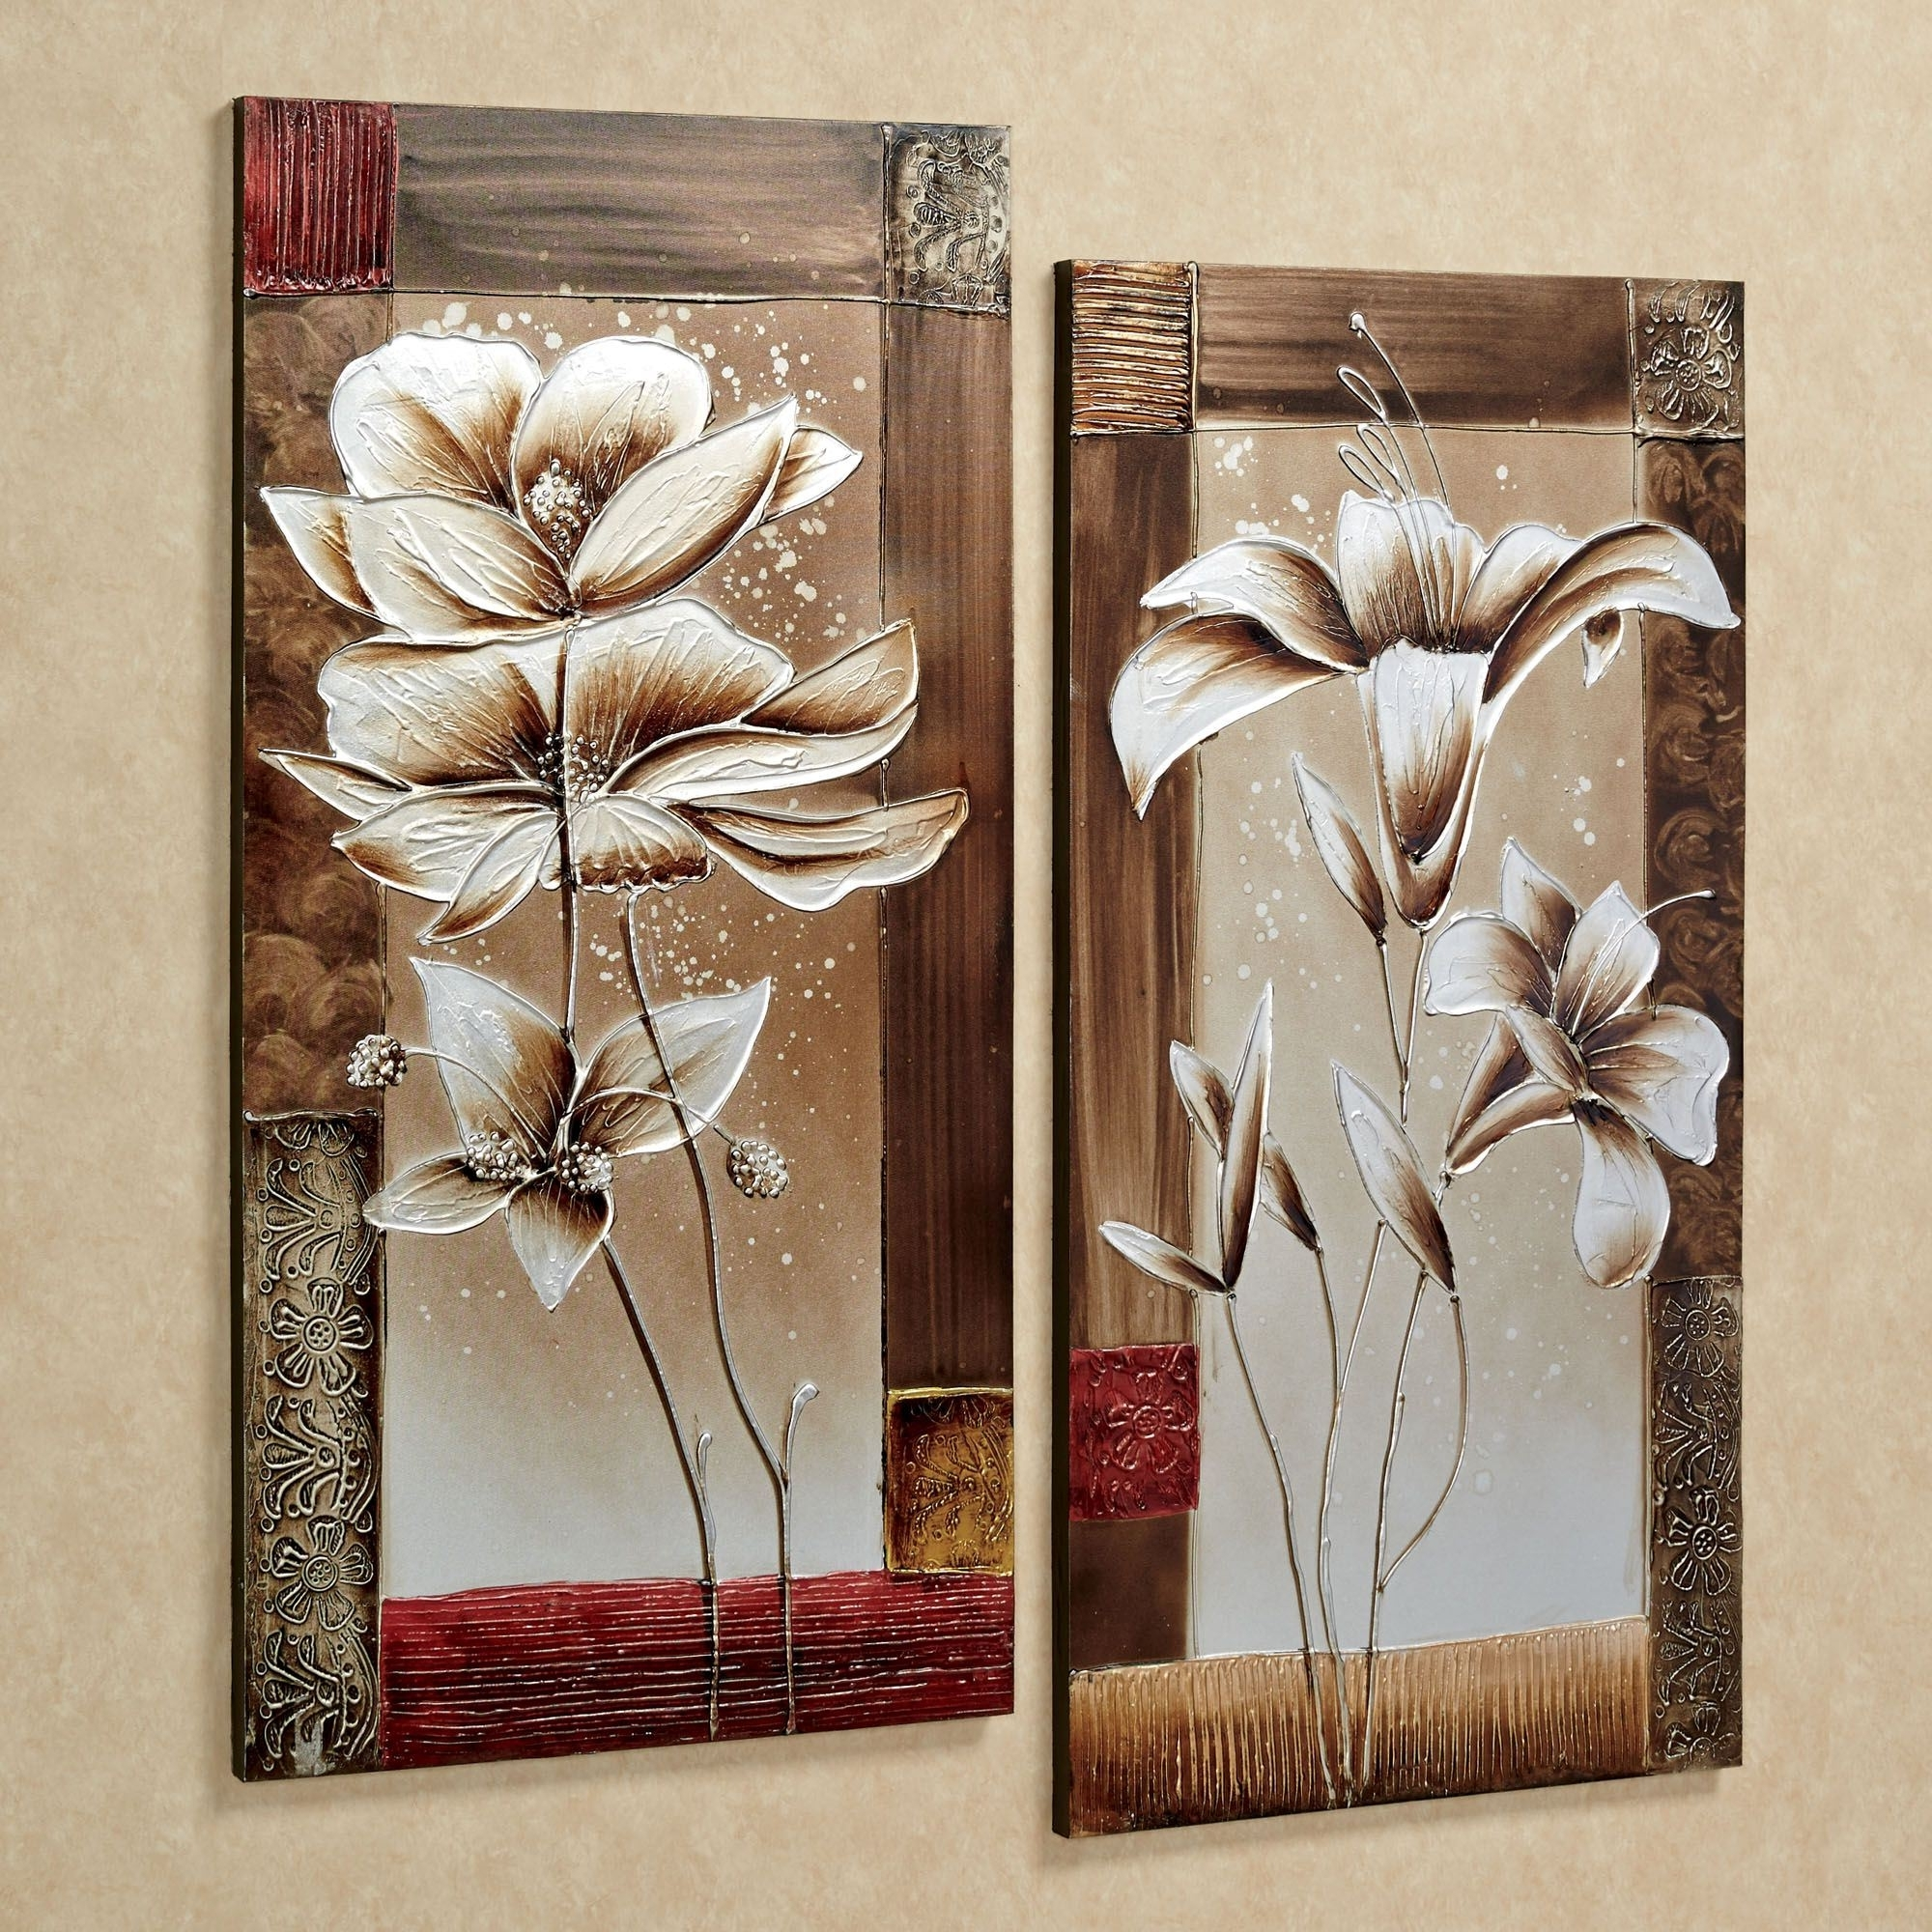 Petals Of Spring Floral Canvas Wall Art Set Intended For Most Popular Canvas Wall Art (View 13 of 15)